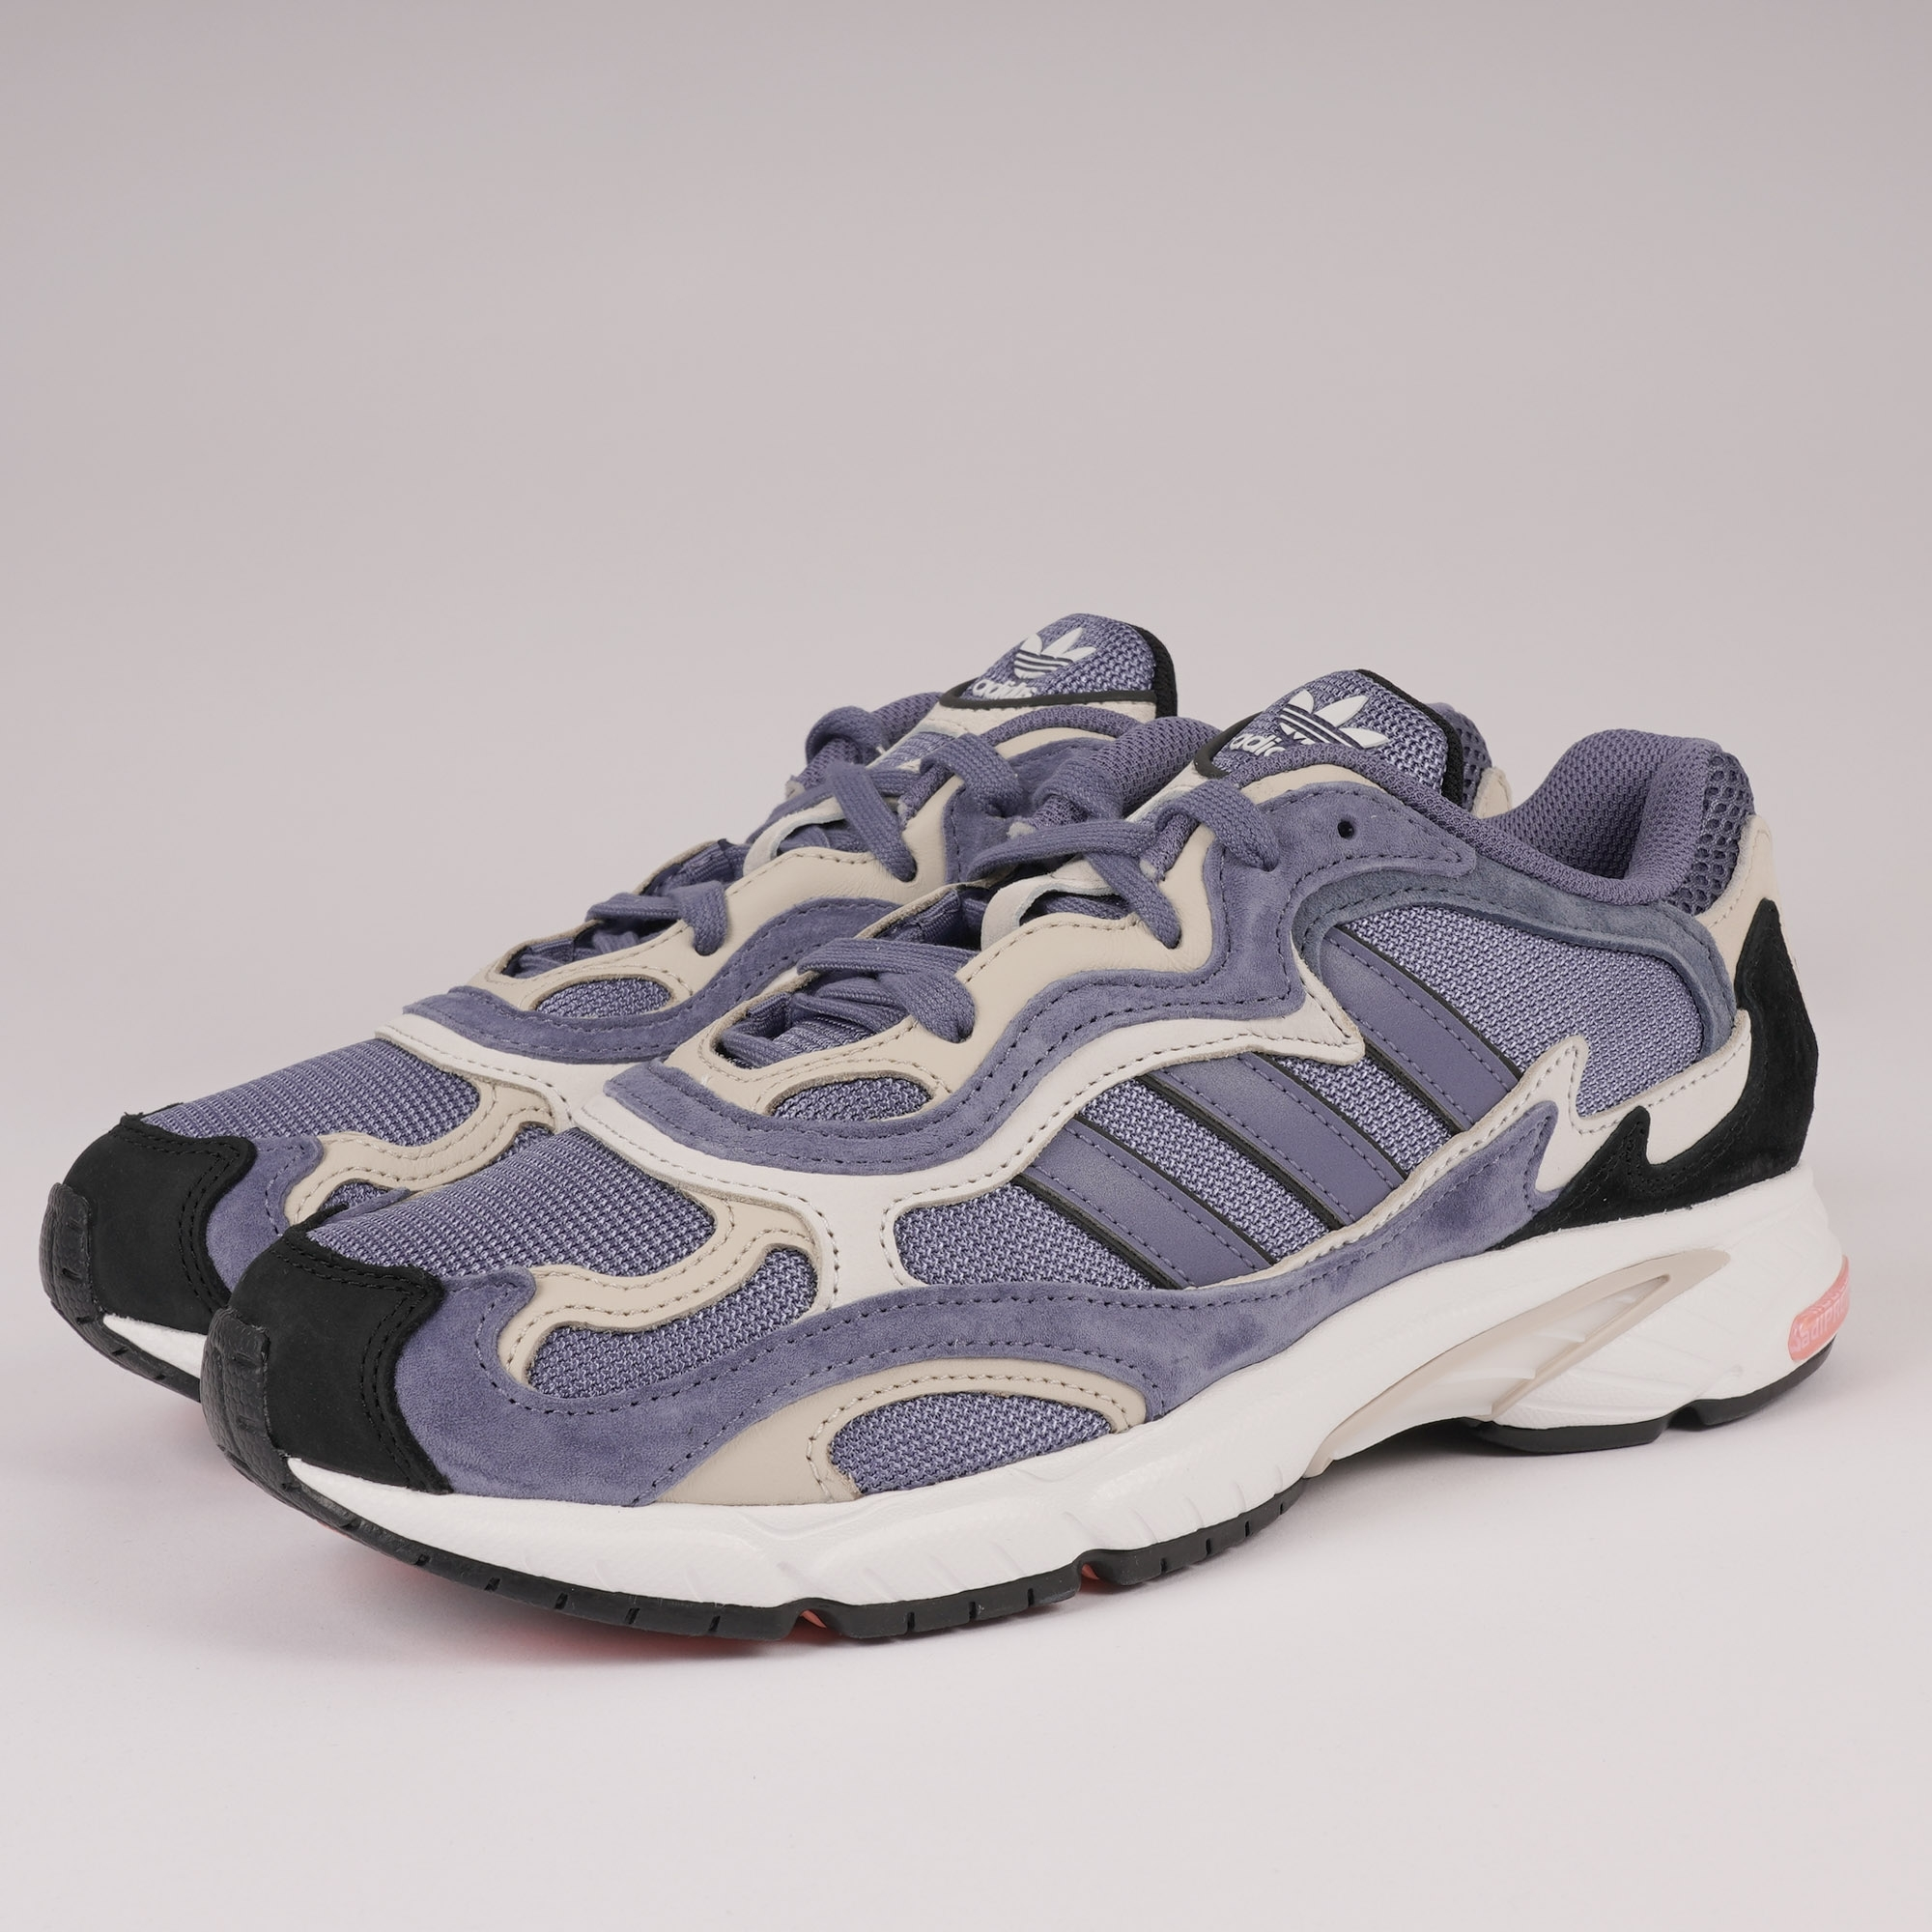 21f8dca9a7f Raw Run Stockists Core Adidas Originals Black Temper Us Indigo amp  qtEfEPBx